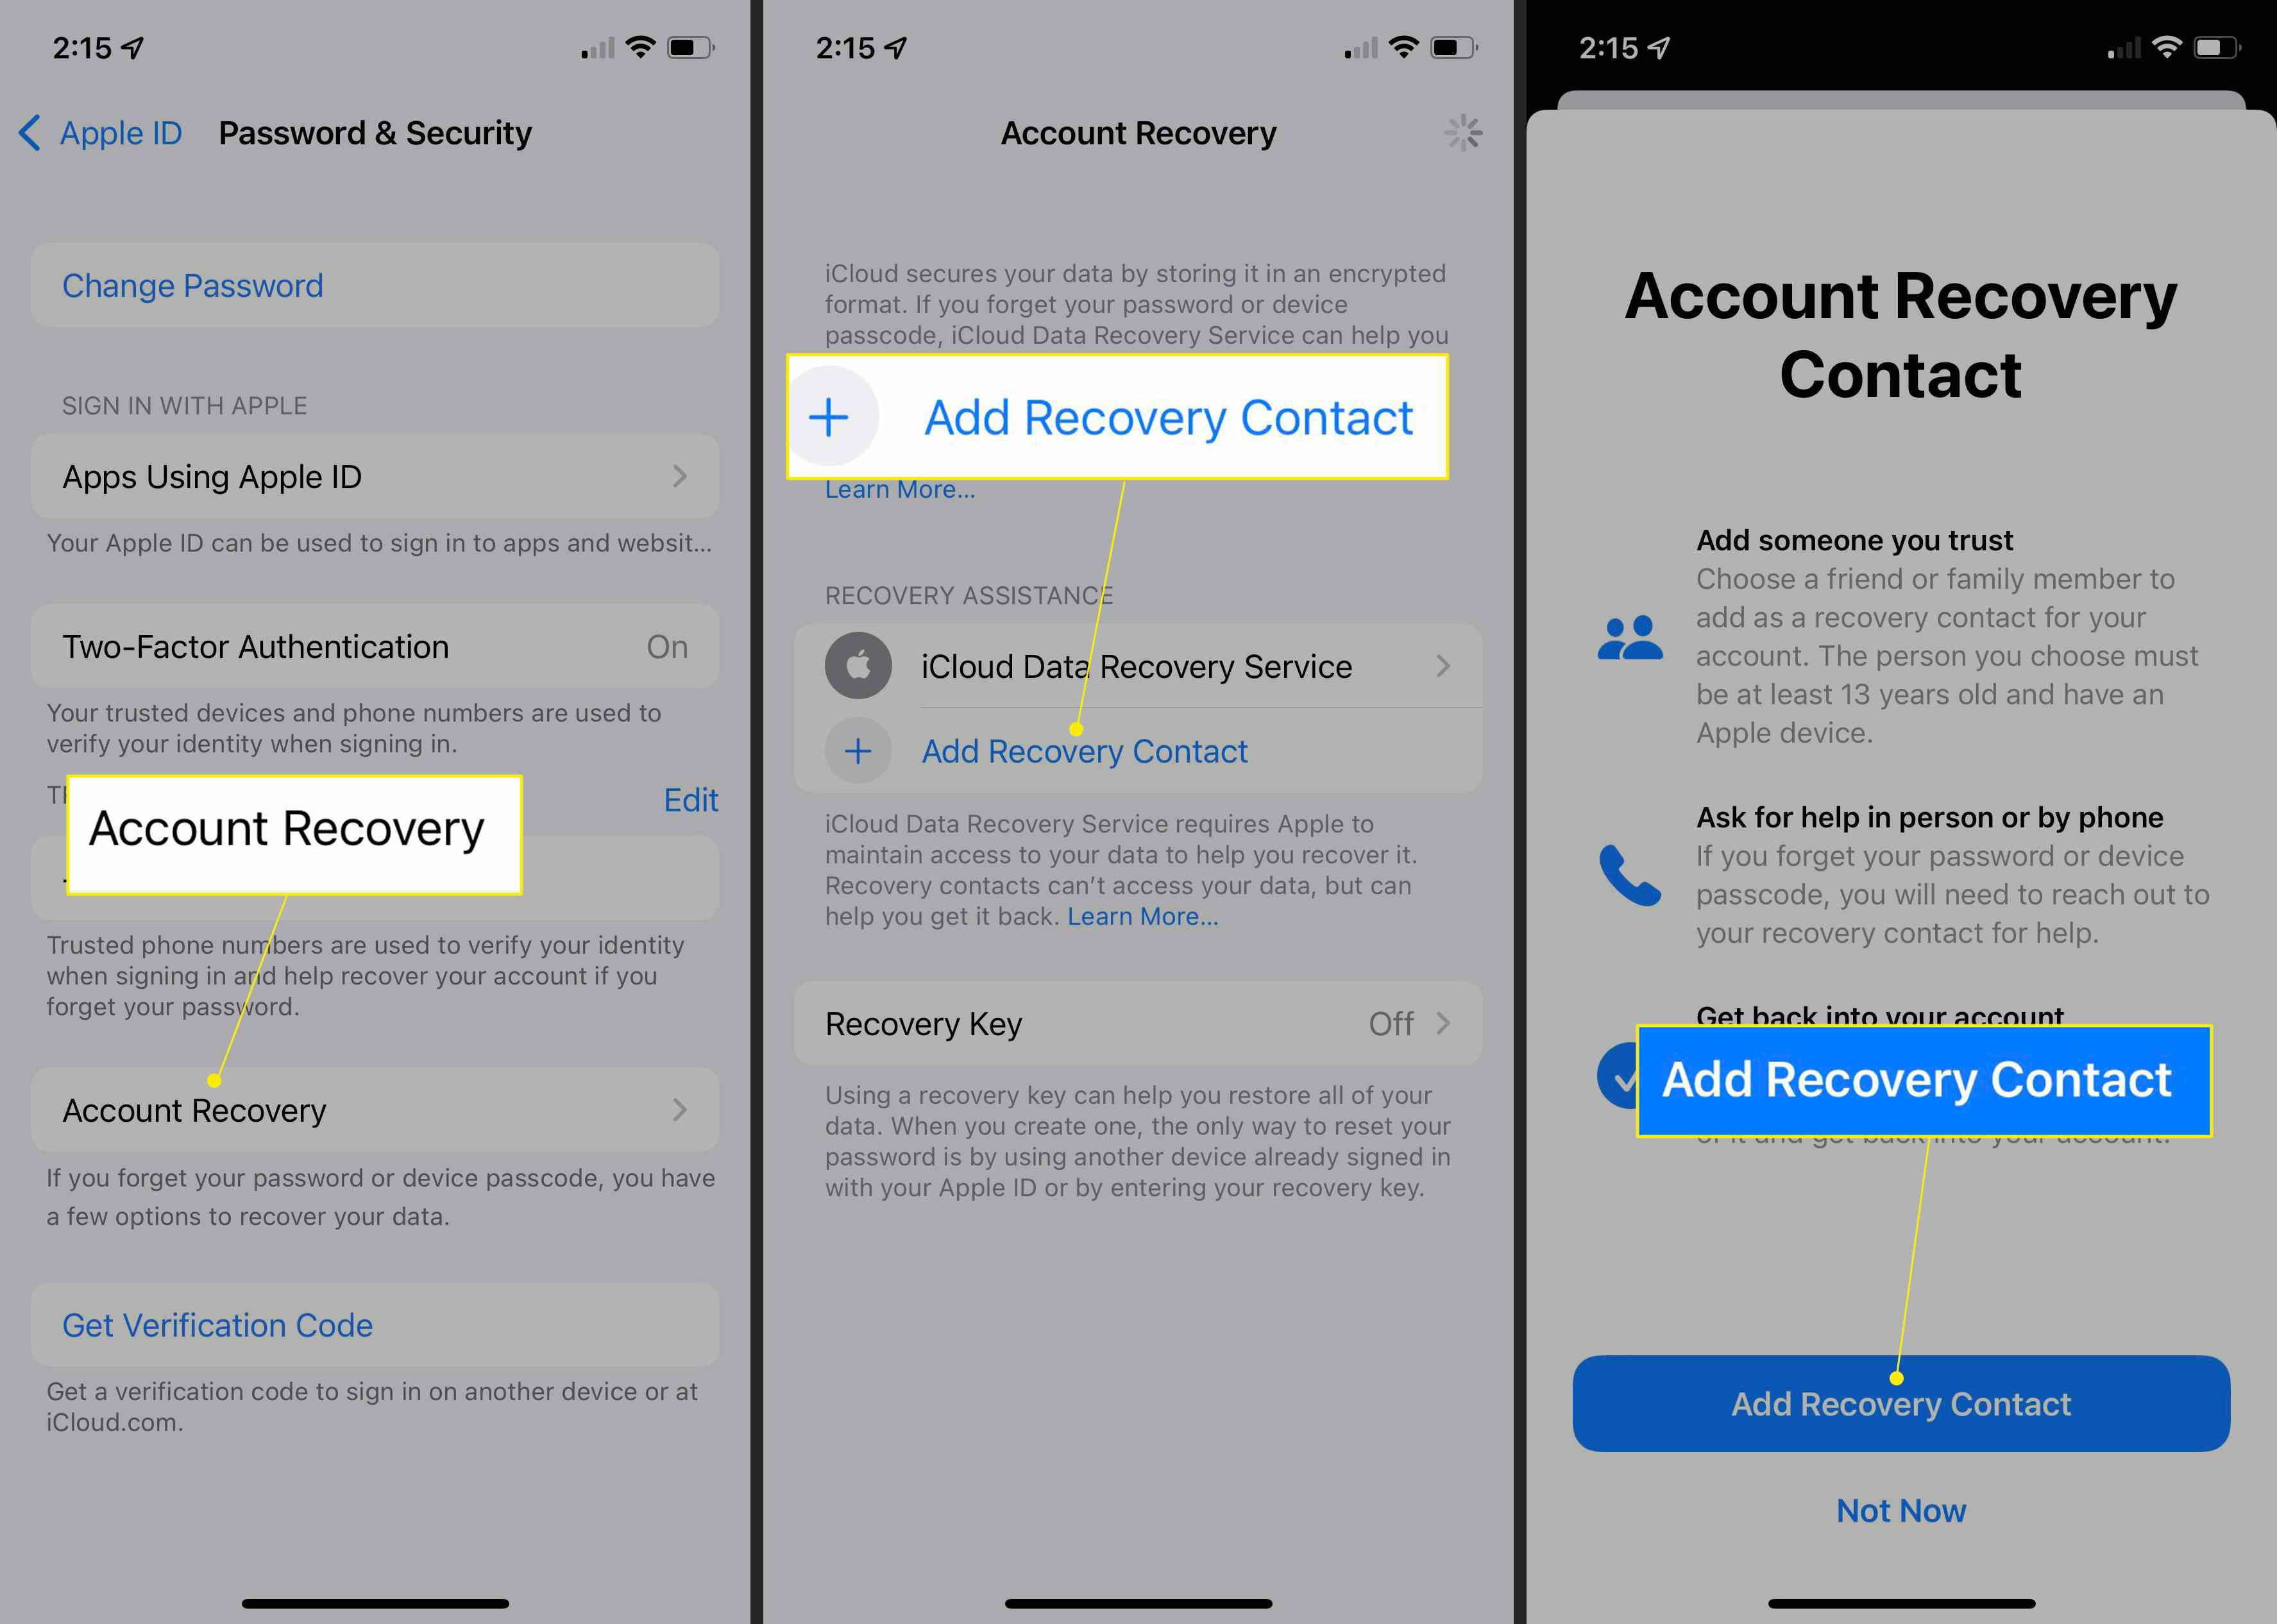 iPhone Privacy & Security settings with Account Recovery, Add Recovery Contact, and Add Recovery Contact (again) highlighted